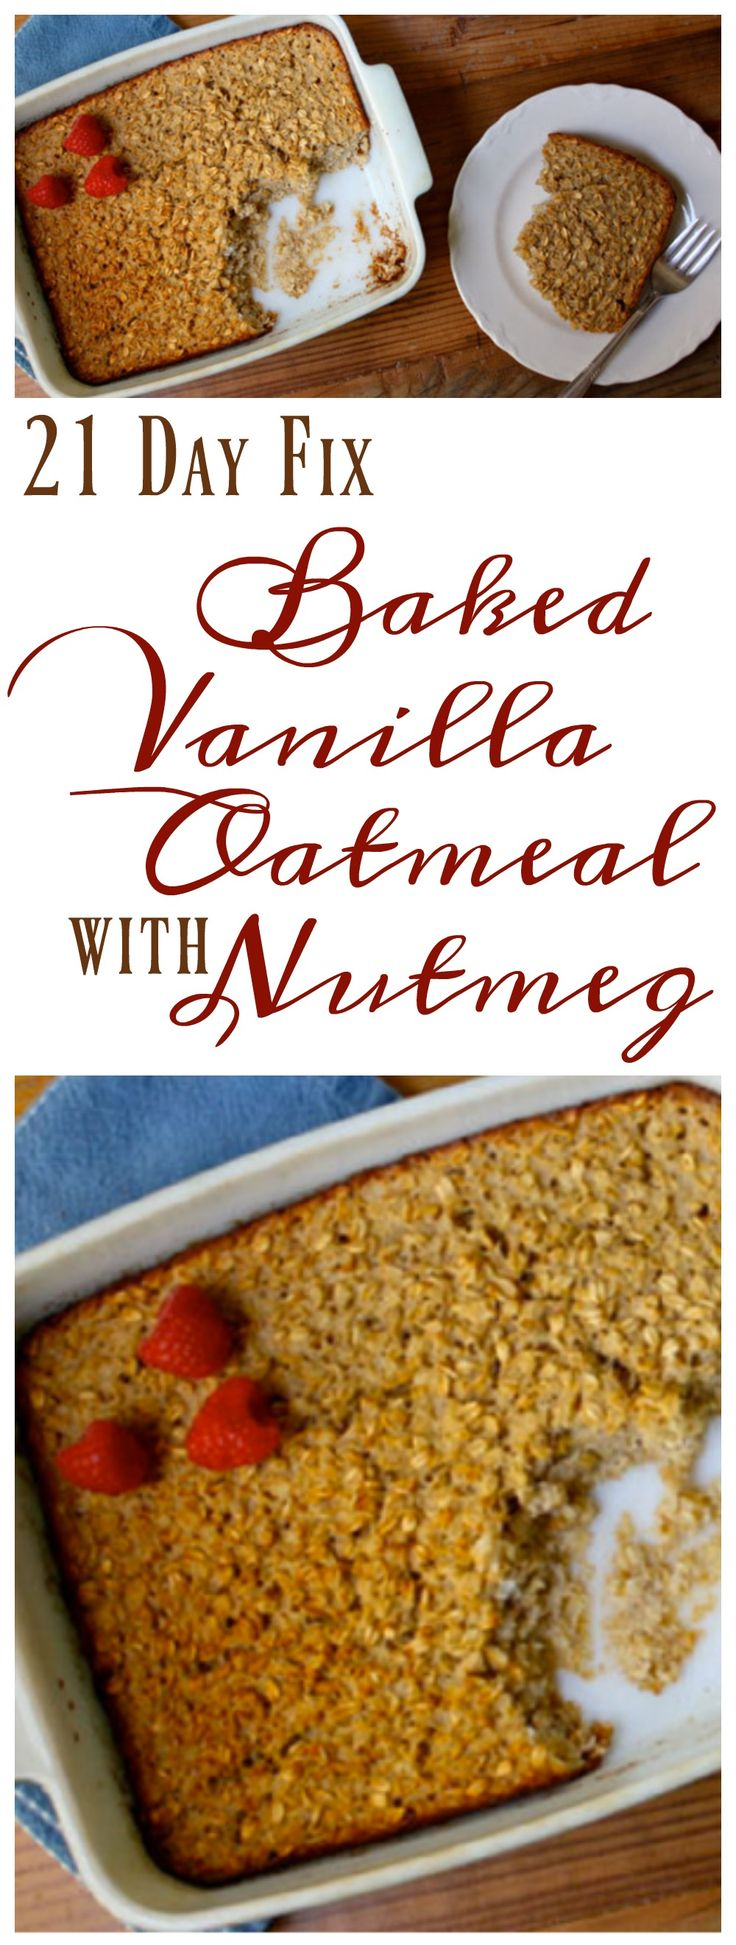 21 Day Fix Baked Oatmeal - Baked Vanilla Oatmeal with Nutmeg